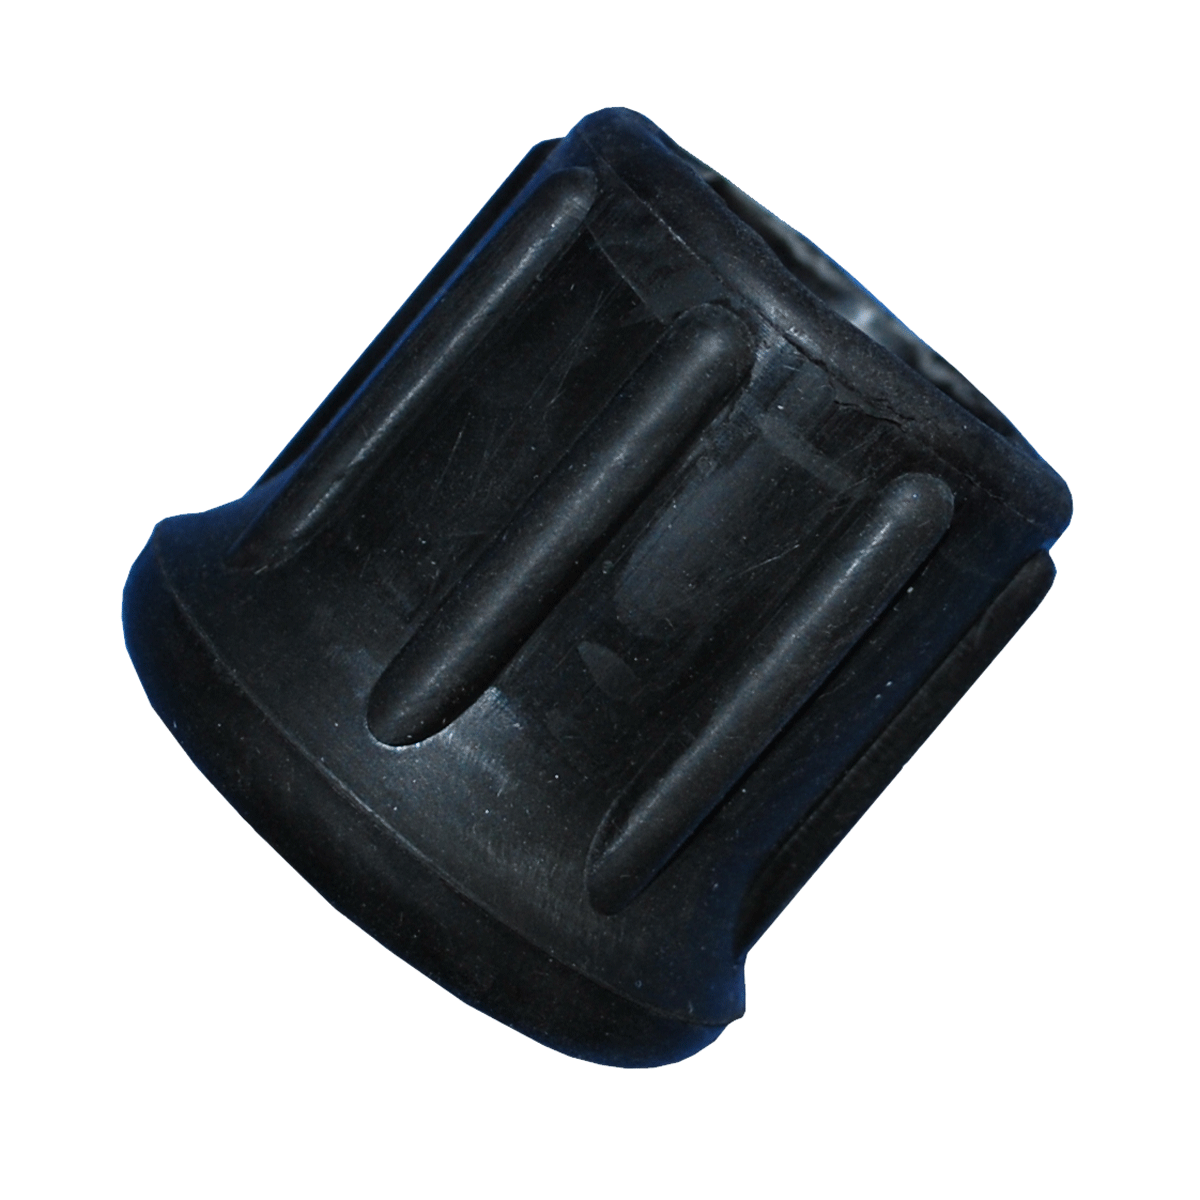 Stein Rubber Foot for Poles